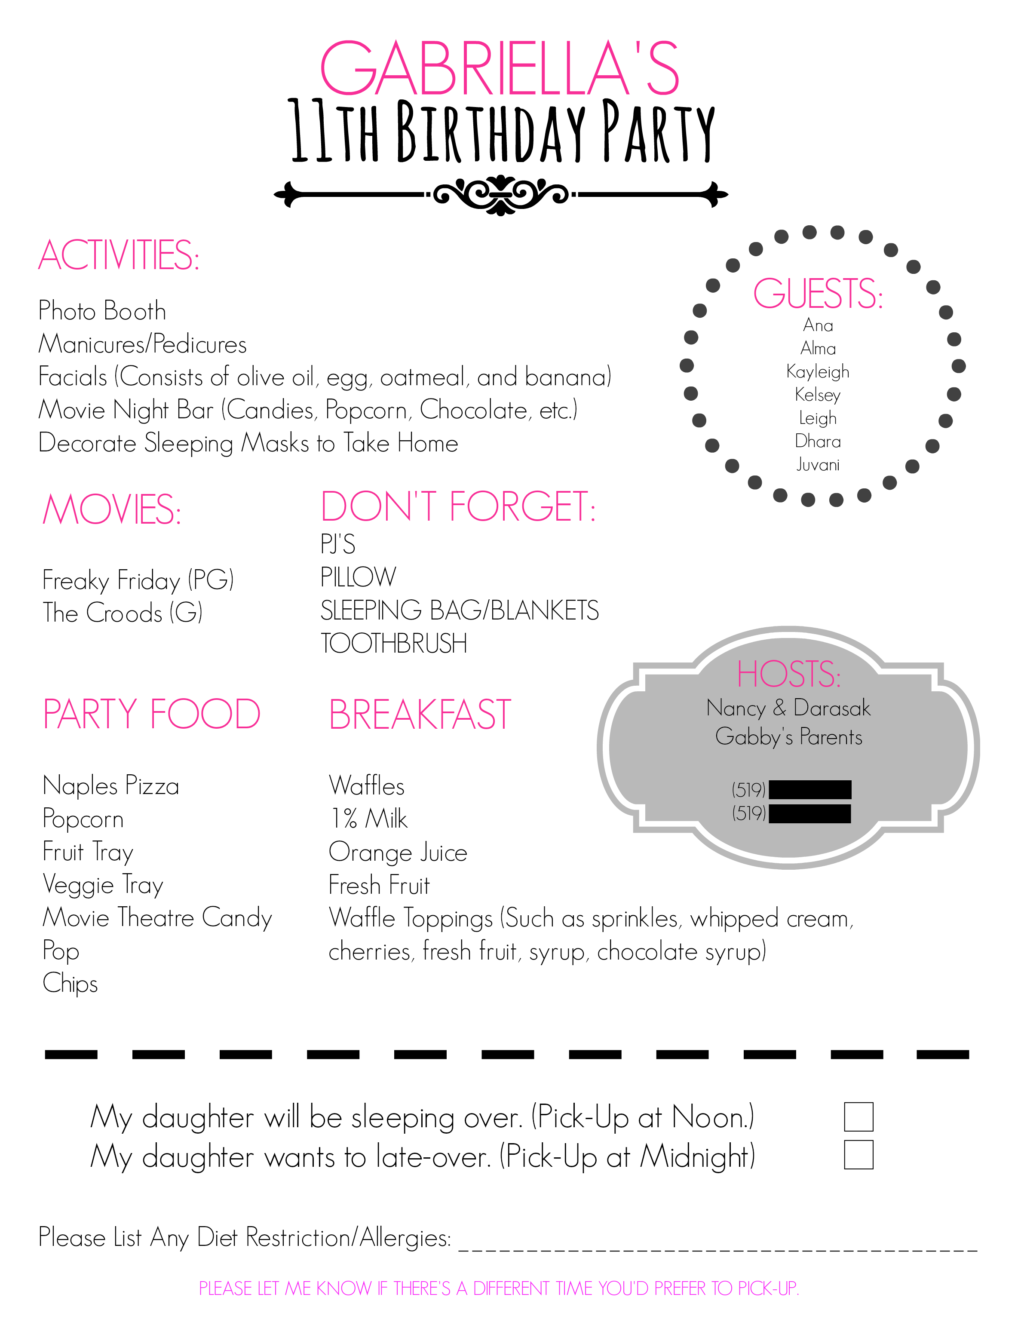 You Can See The Party Itinerary Here And Download A Blank One For Your Own Use HERE